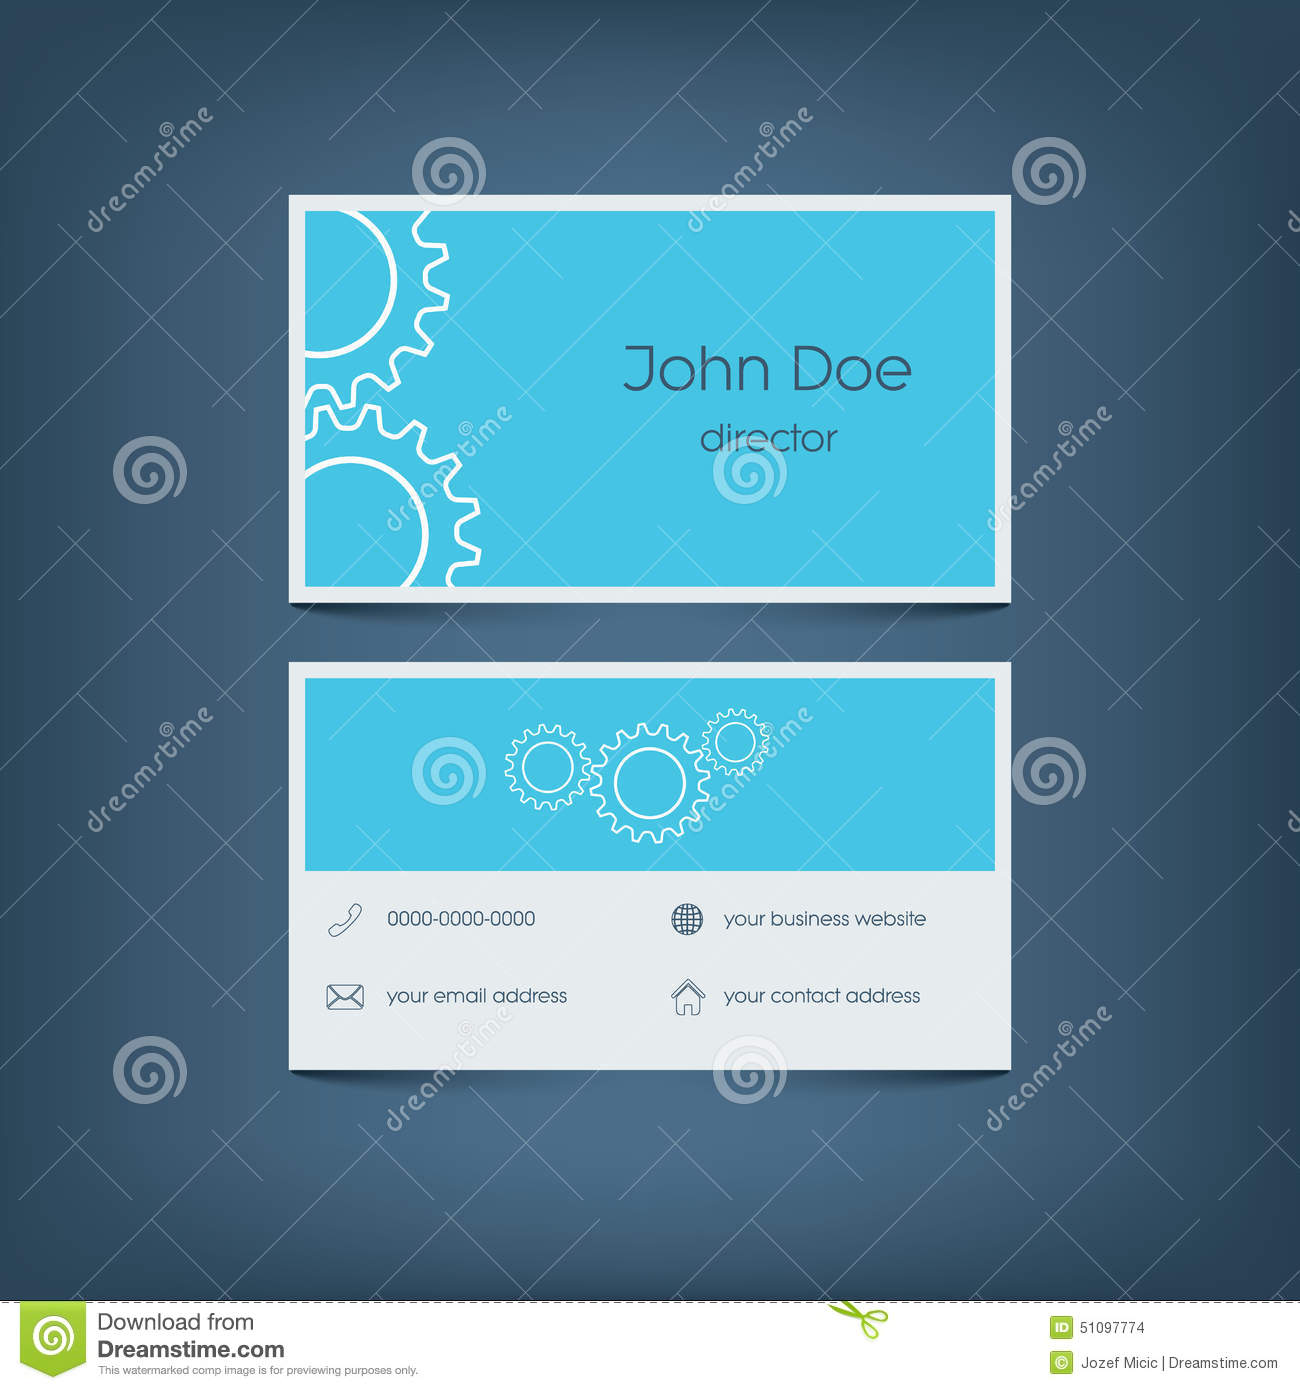 Modern flat design business card template graphic stock vector download modern flat design business card template graphic stock vector illustration of flat accmission Images